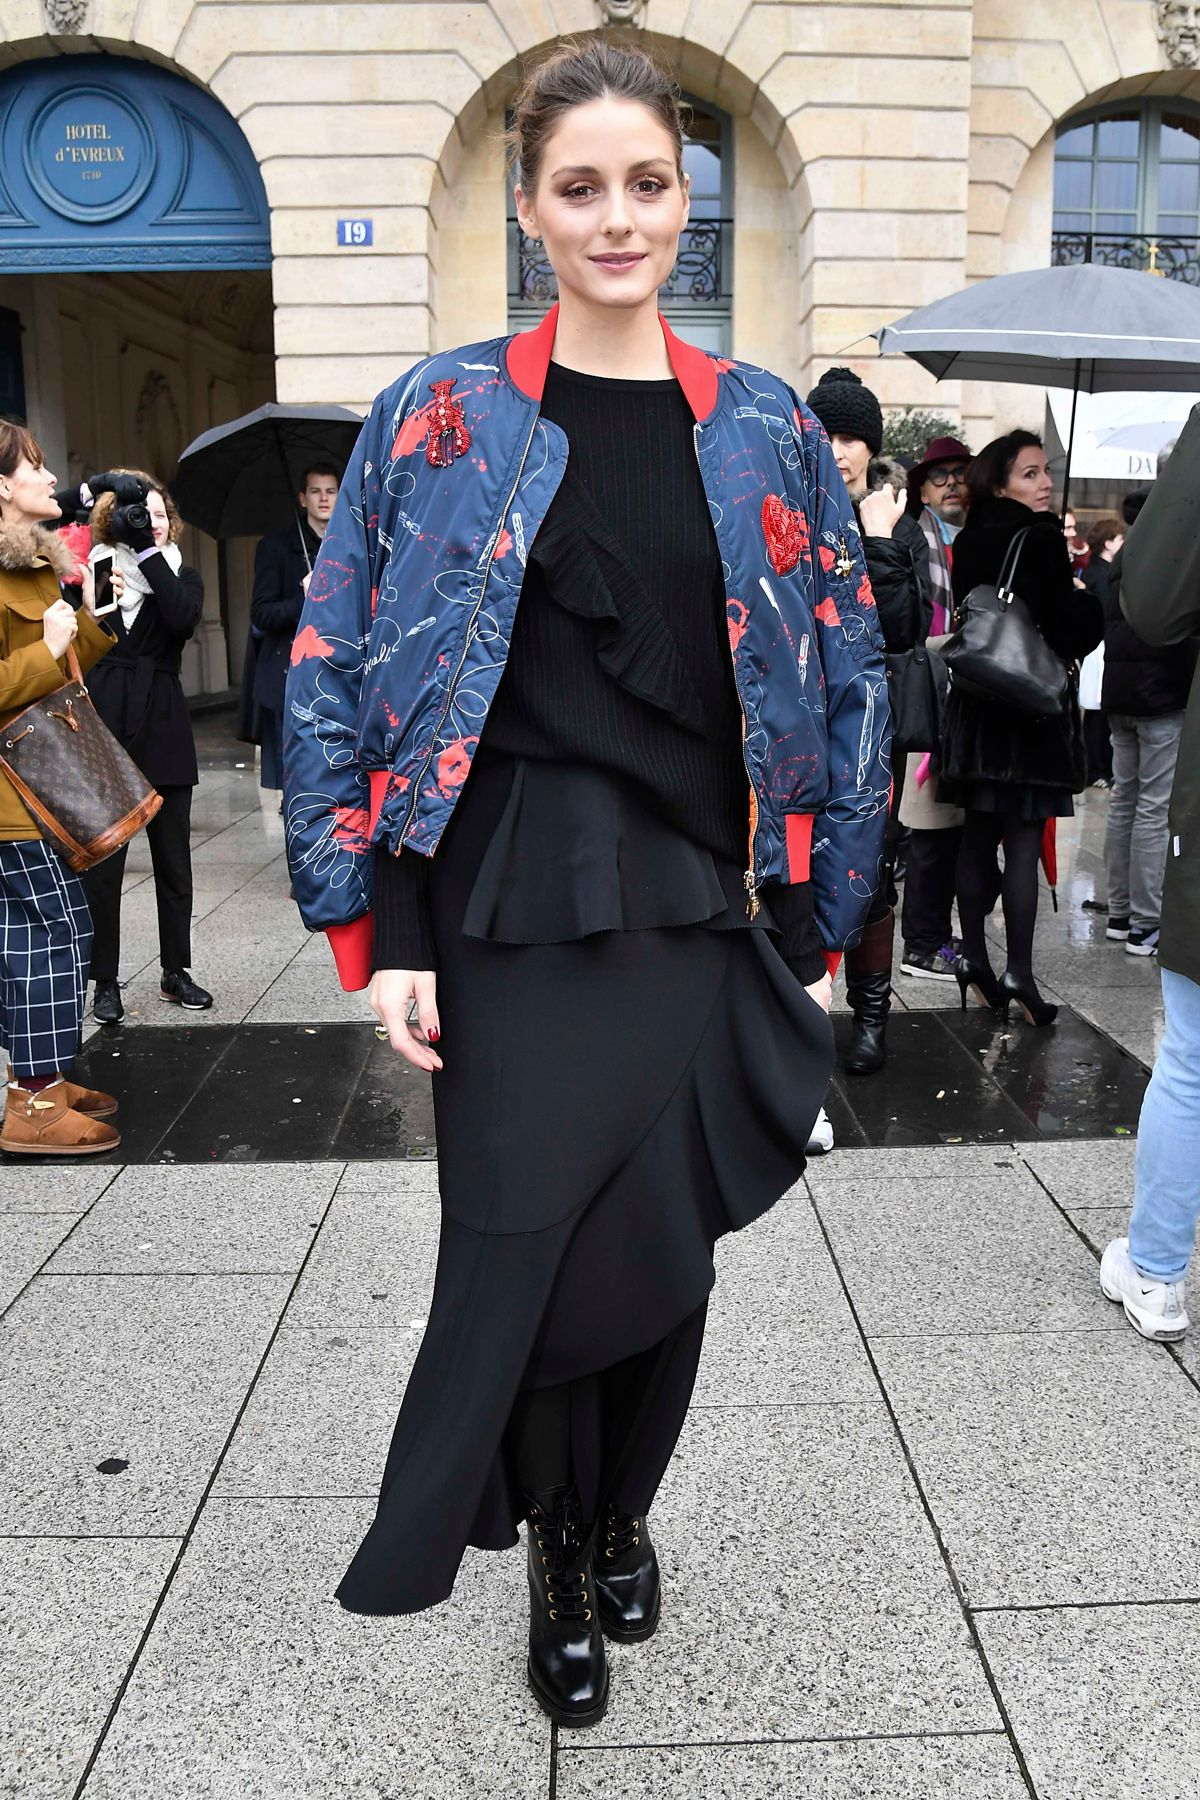 The Best Street Style Moments at Haute Couture PFW 2019 The Best Street Style Moments at Haute Couture PFW 2019 new pics